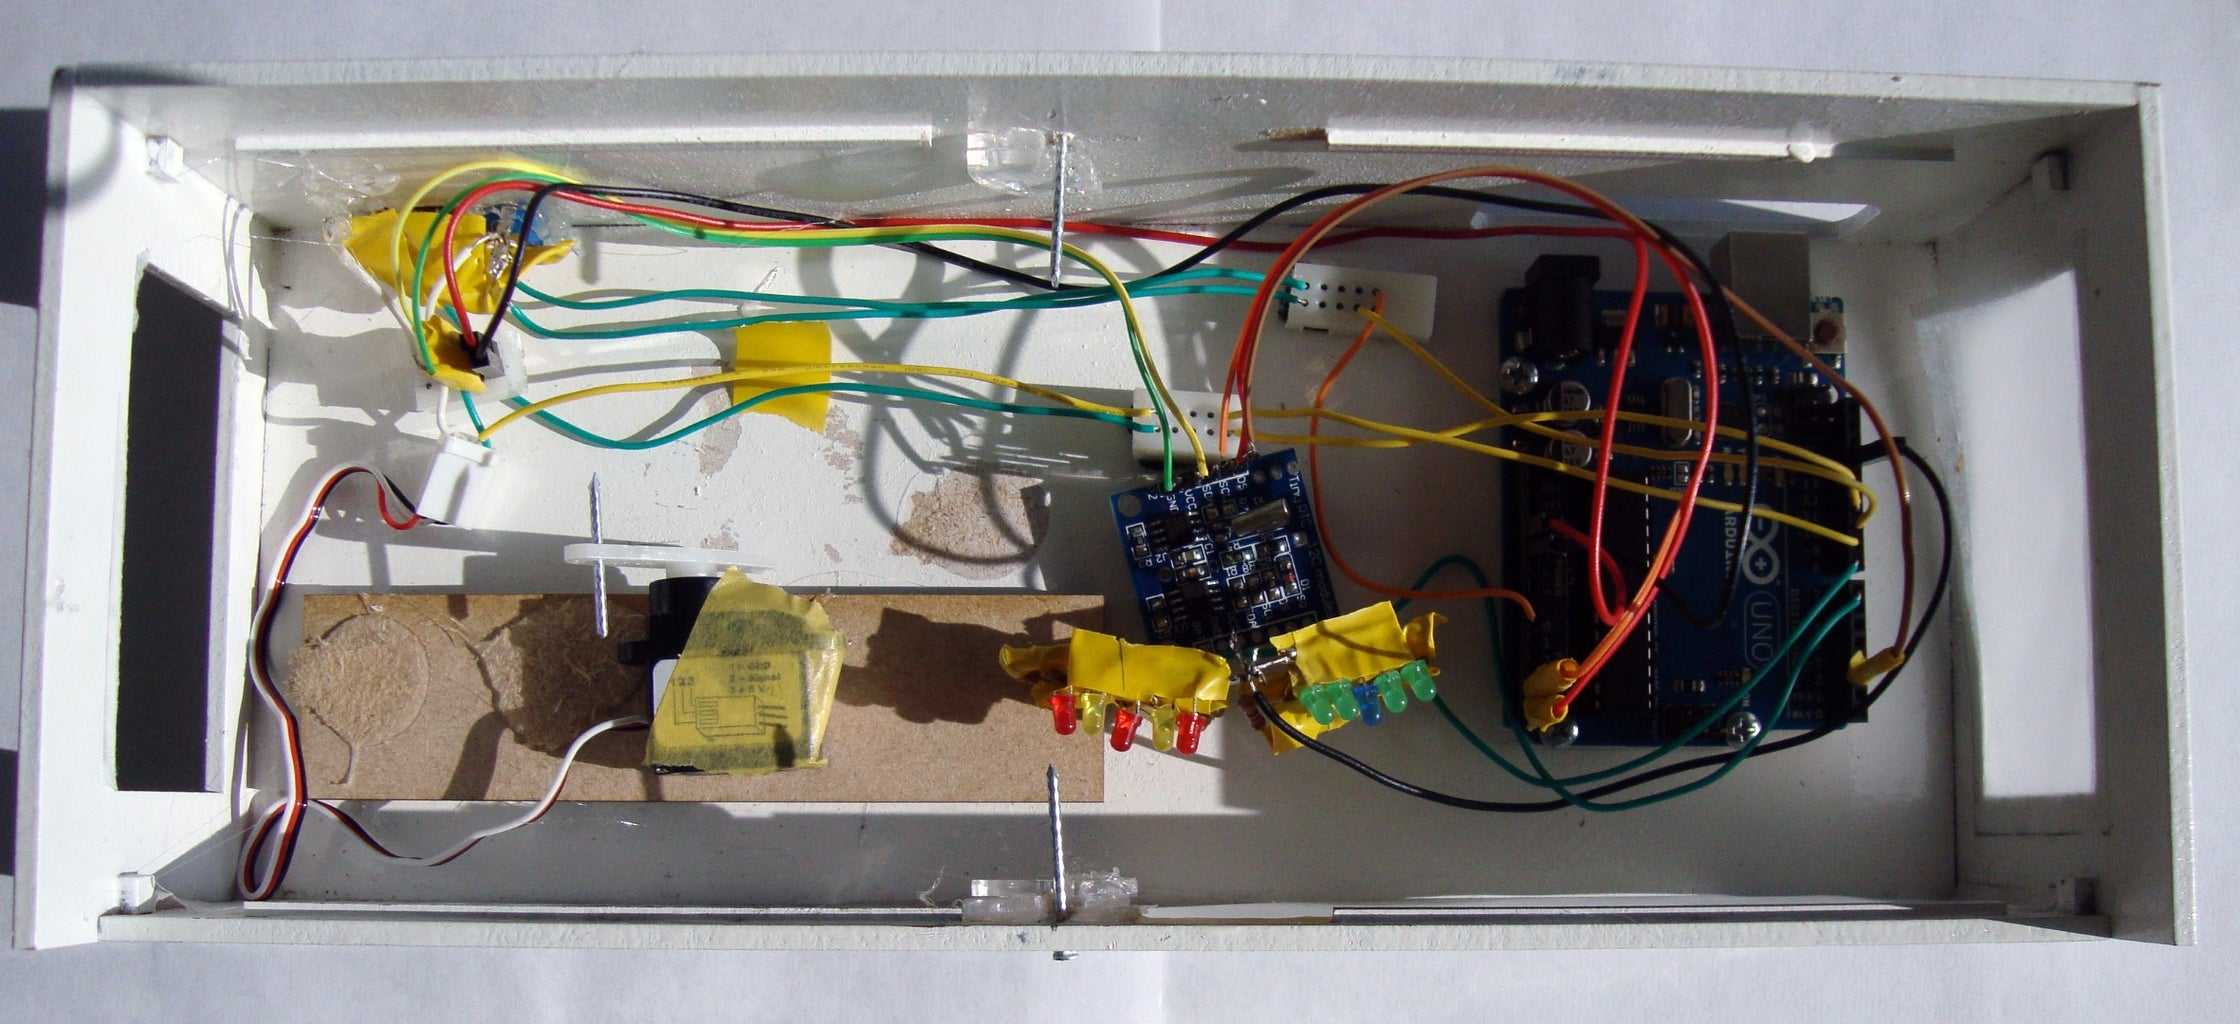 Fitting the Electronics in the Bed Frame